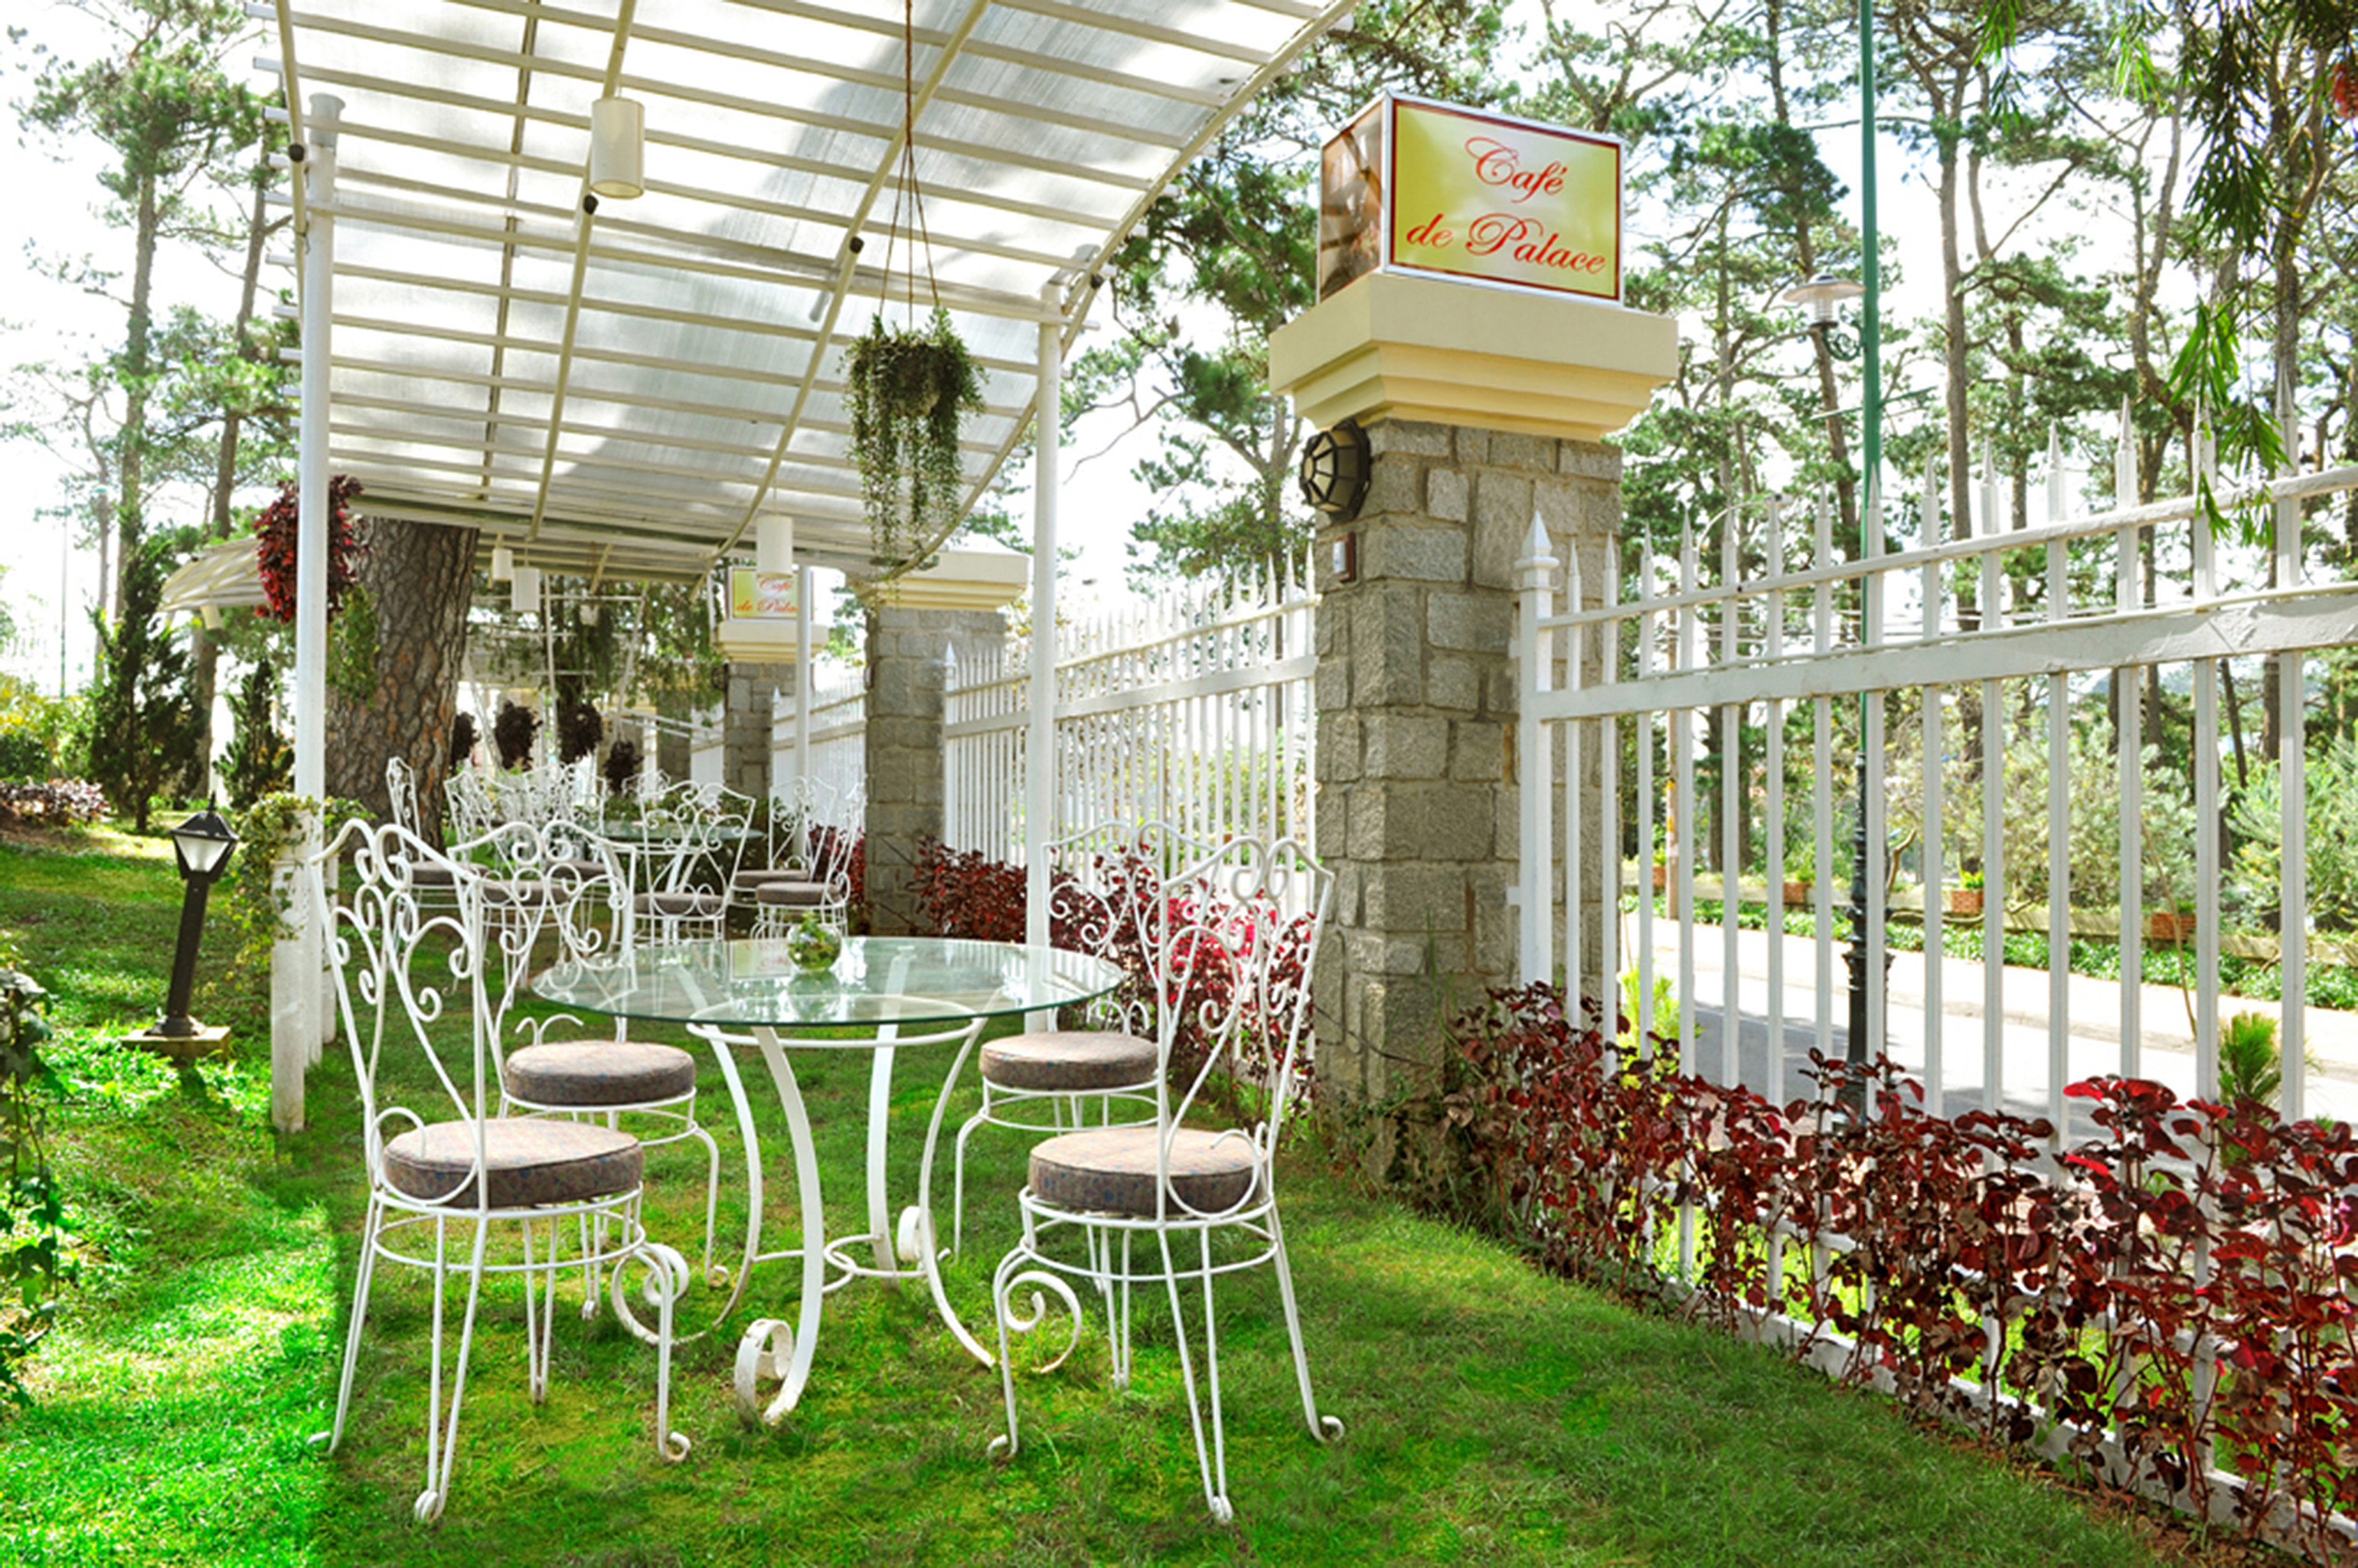 grass chair tree lawn aisle building porch Garden flower backyard outdoor structure floristry yard Dining orangery set